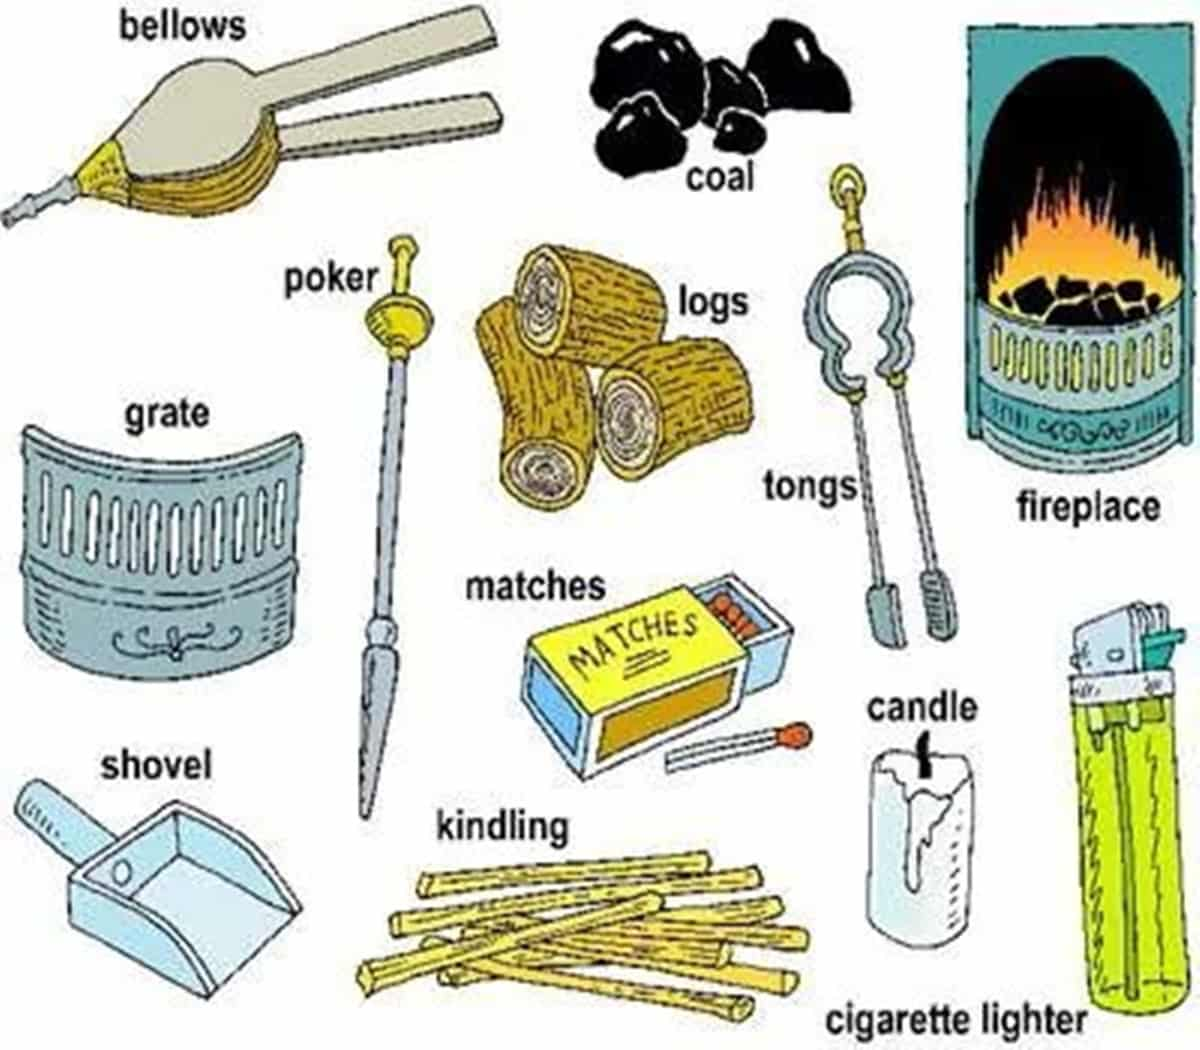 Tools, Equipment, Devices and Home Appliances Vocabulary: 300+ Items Illustrated 17